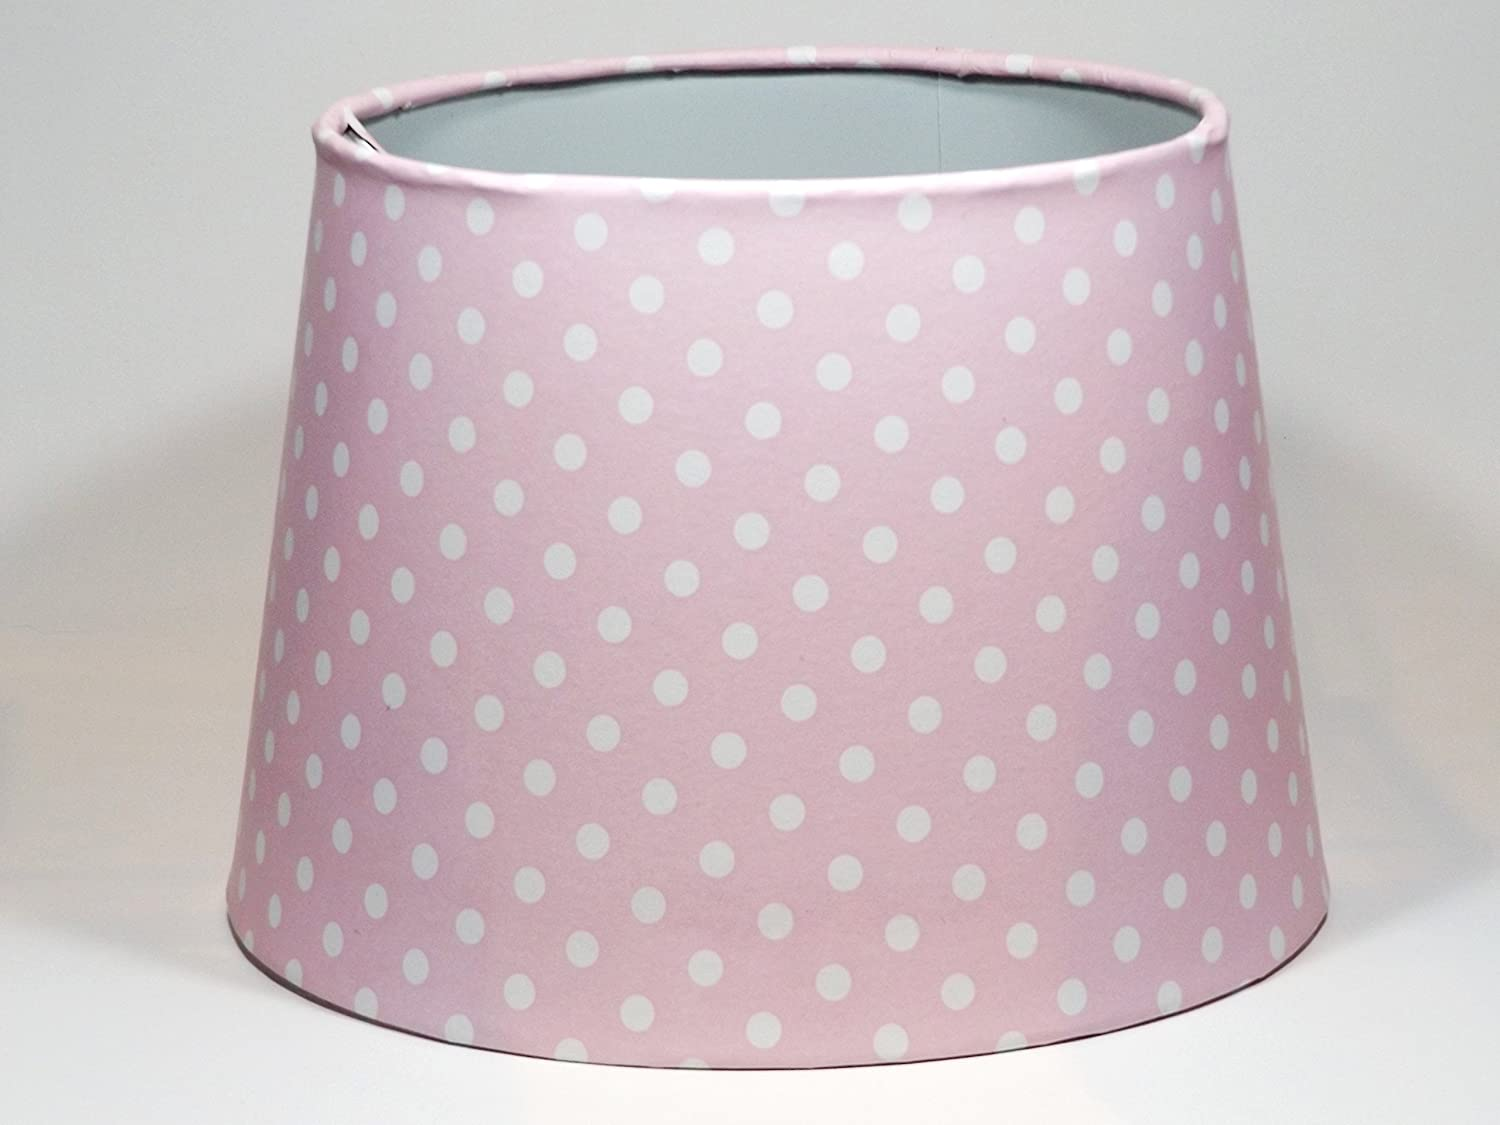 Pink polka dot lampshade or ceiling light shade lamps girls bedroom pink polka dot lampshade or ceiling light shade lamps girls bedroom nursery accessories gifts 95 dual purpose amazon lighting aloadofball